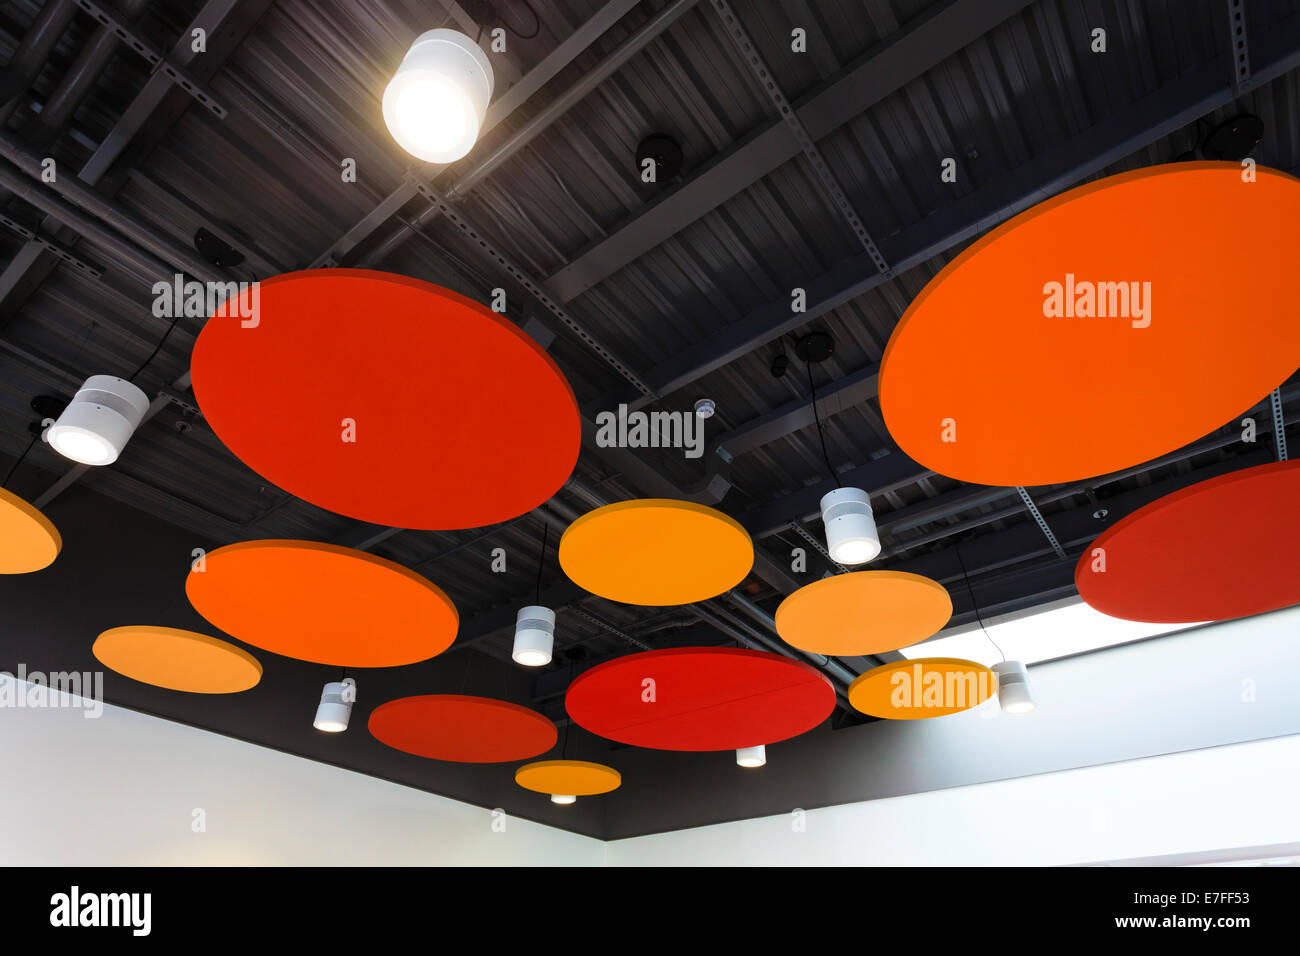 Colourful acoustic attenuator discs in ceiling. - Stock Image